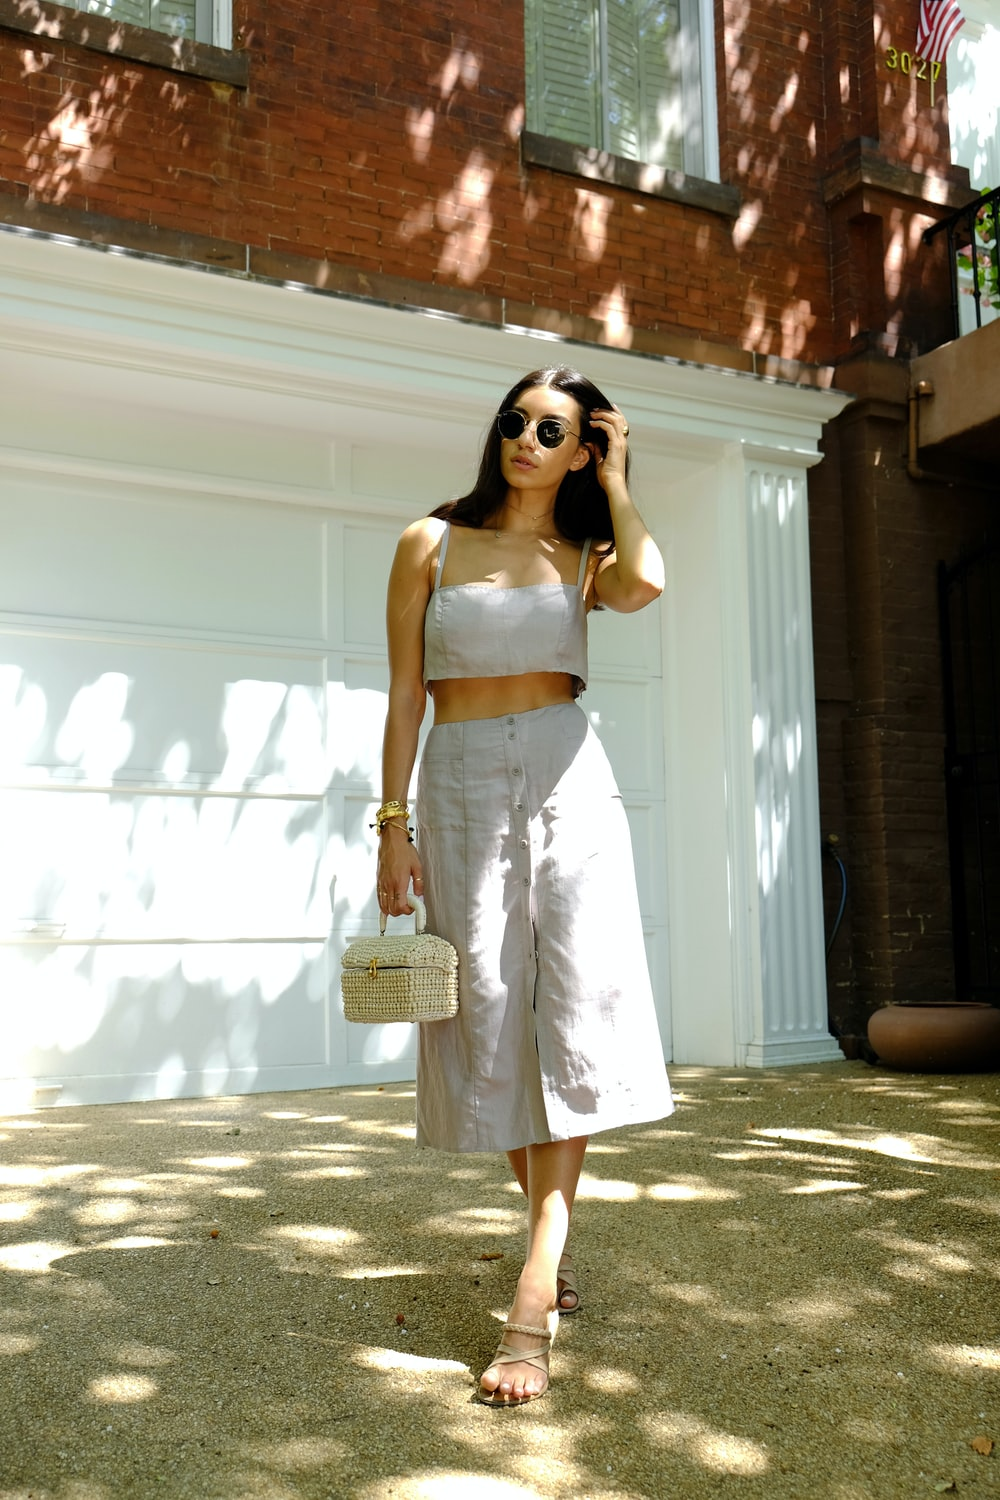 woman in white spaghetti strap dress wearing sunglasses standing near white wall during daytime